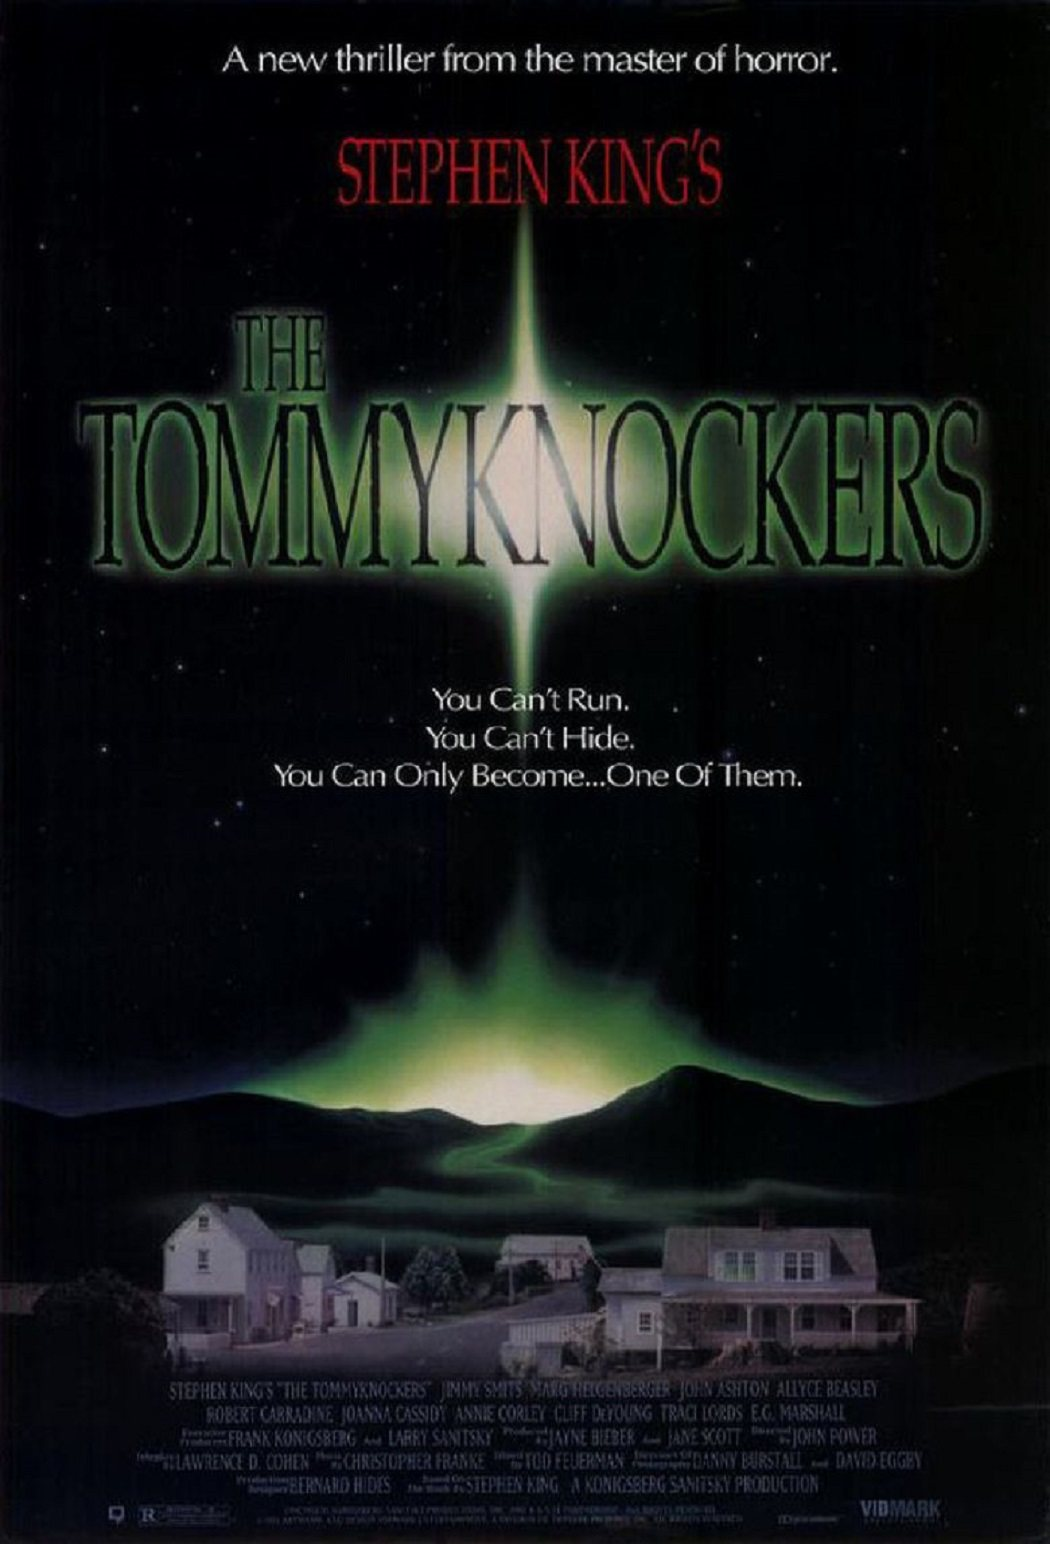 'The Tommyknockers'